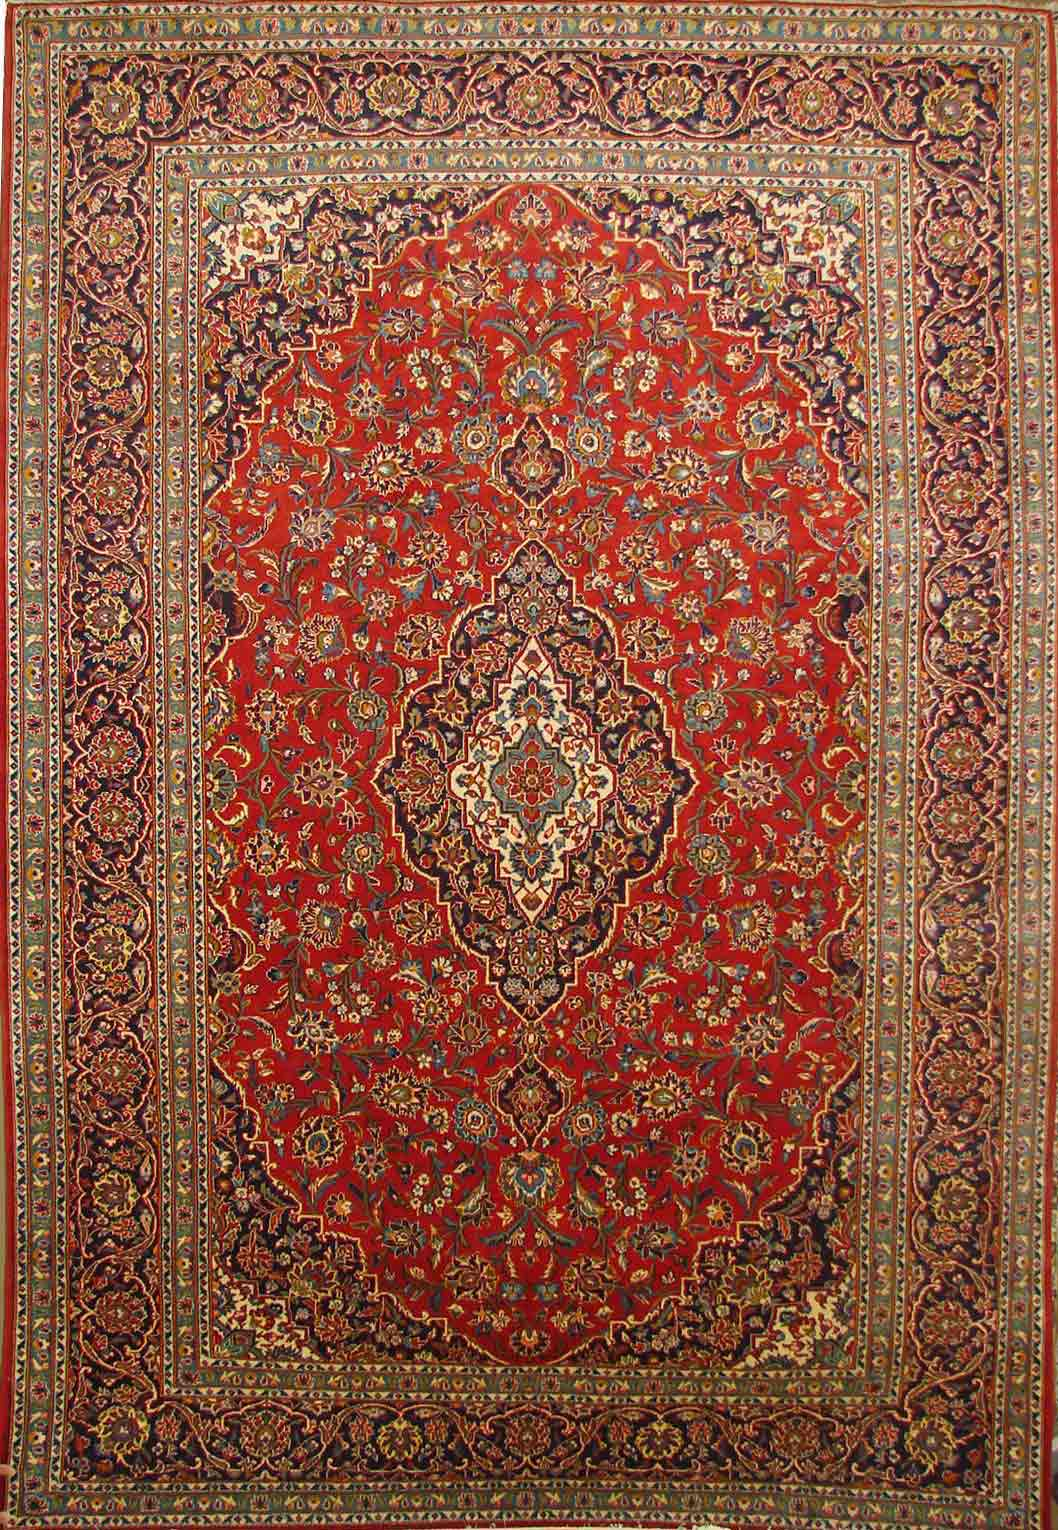 Design The Real Cowhide Rug For Area Persian Rugs